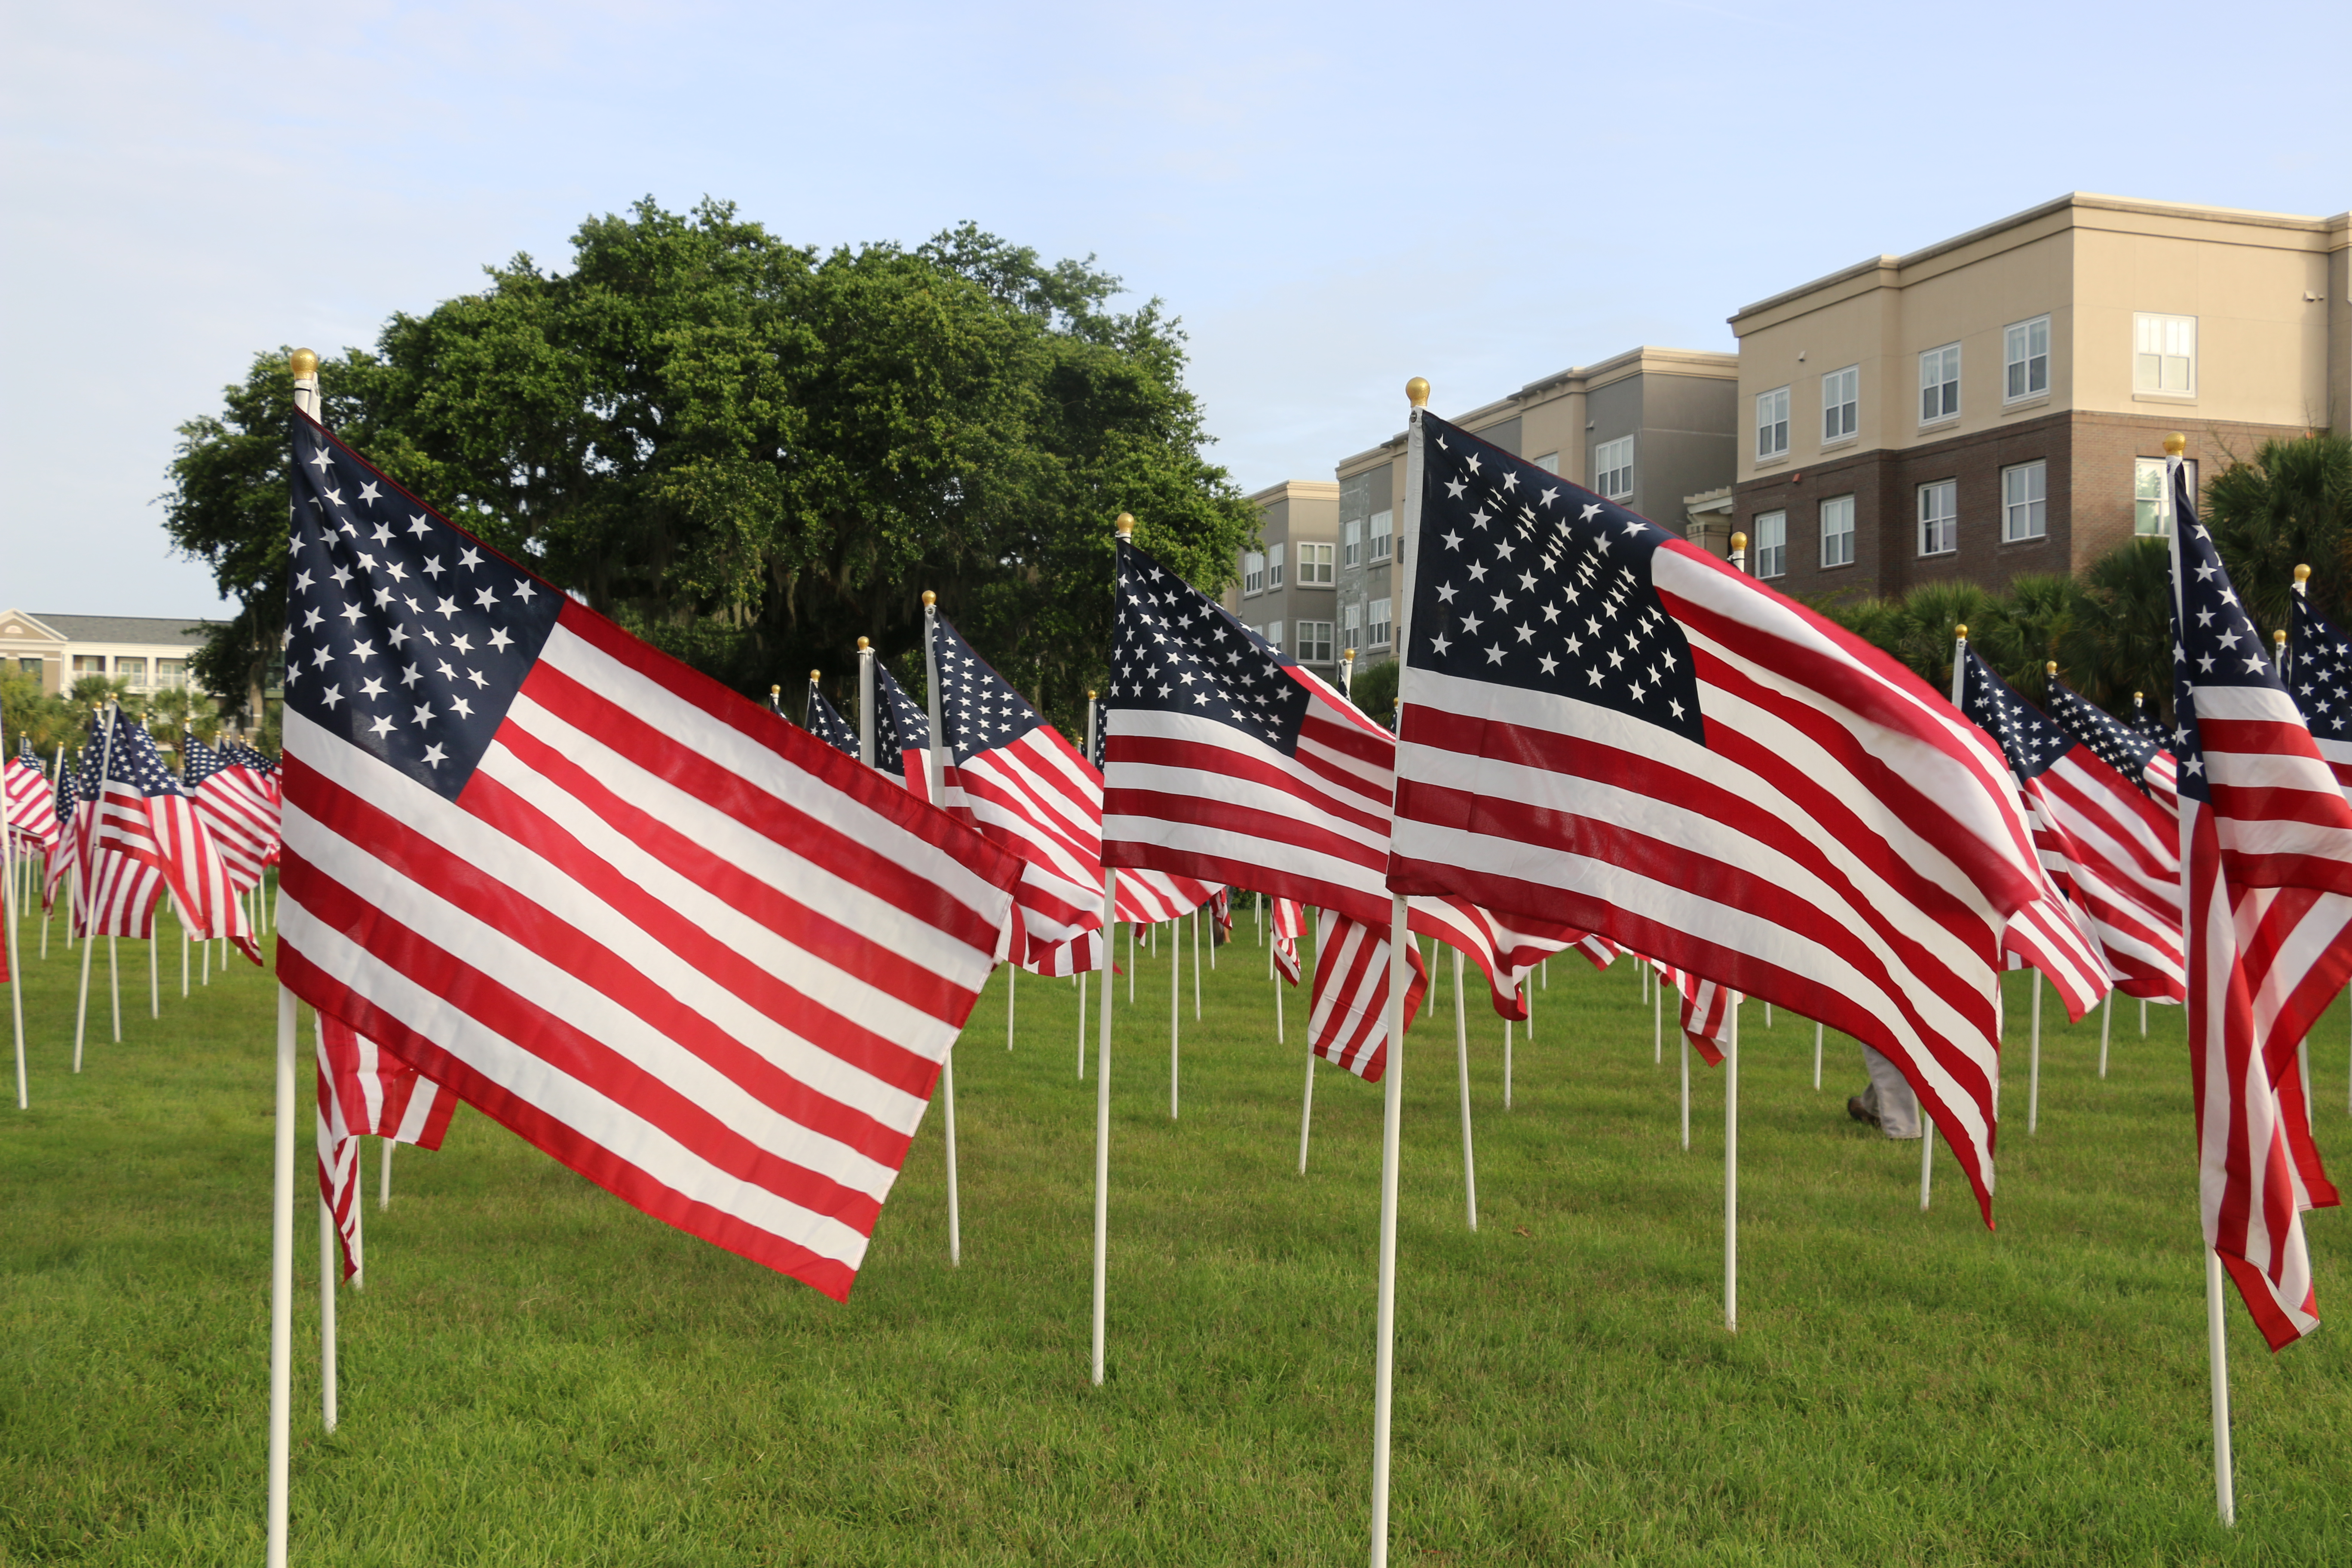 Flags wave from the Field of Honor!